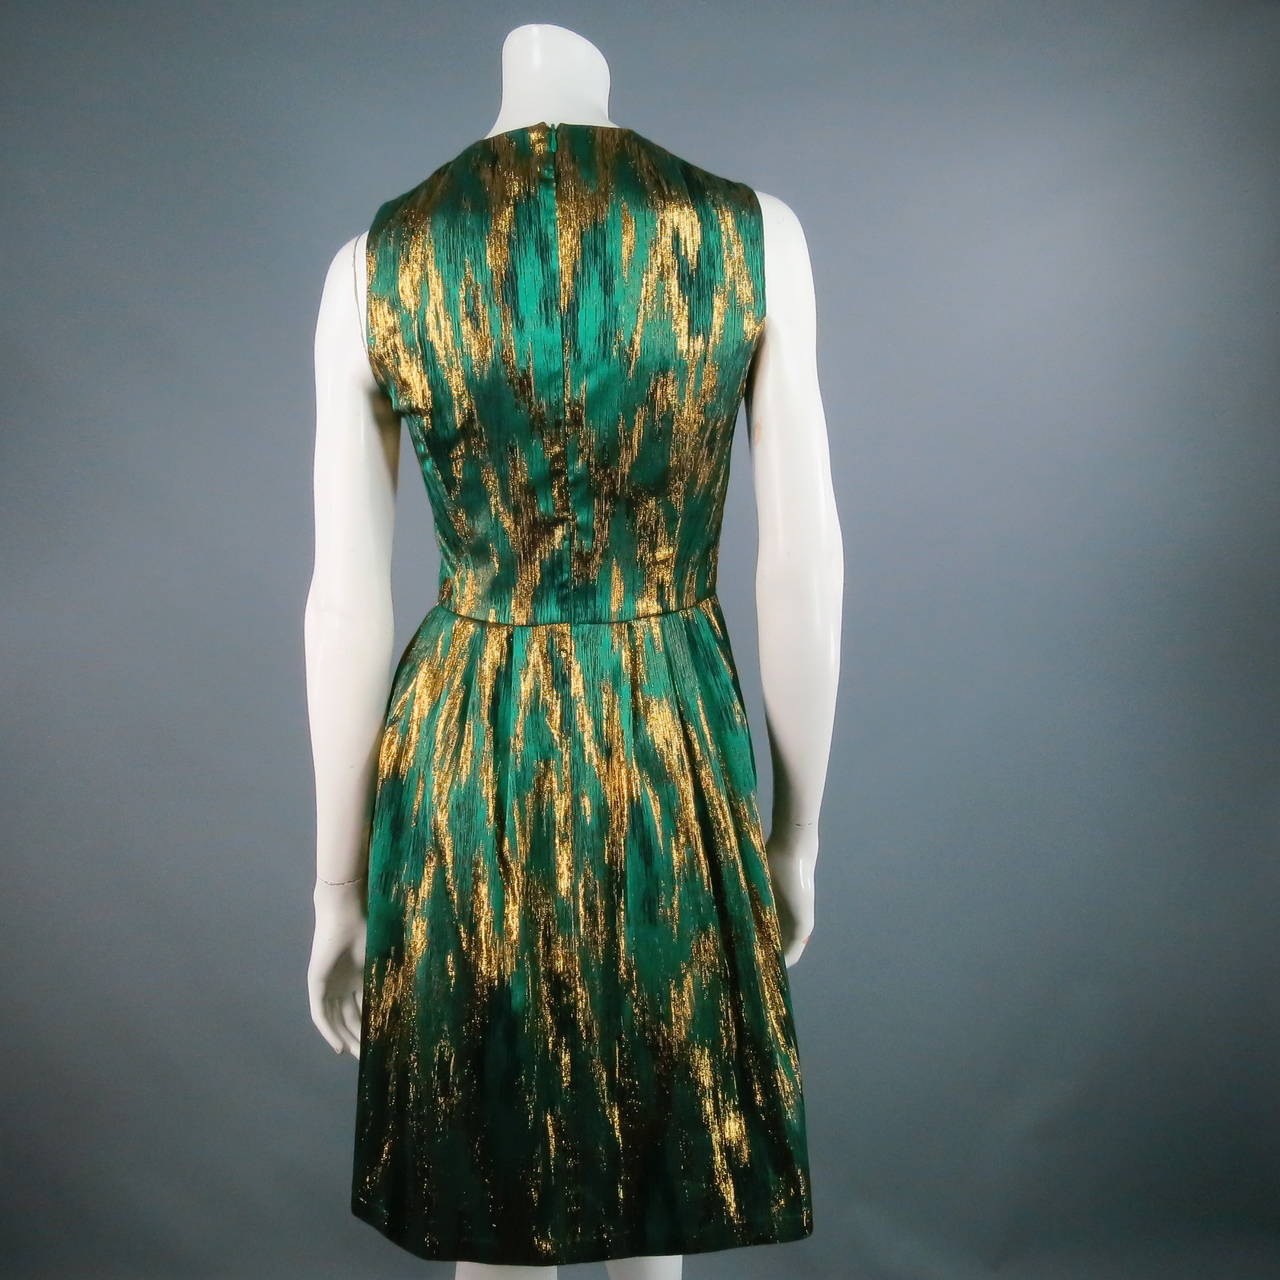 MICHAEL KORS Size 4 Green Polyester Blend Cocktail Dress 3